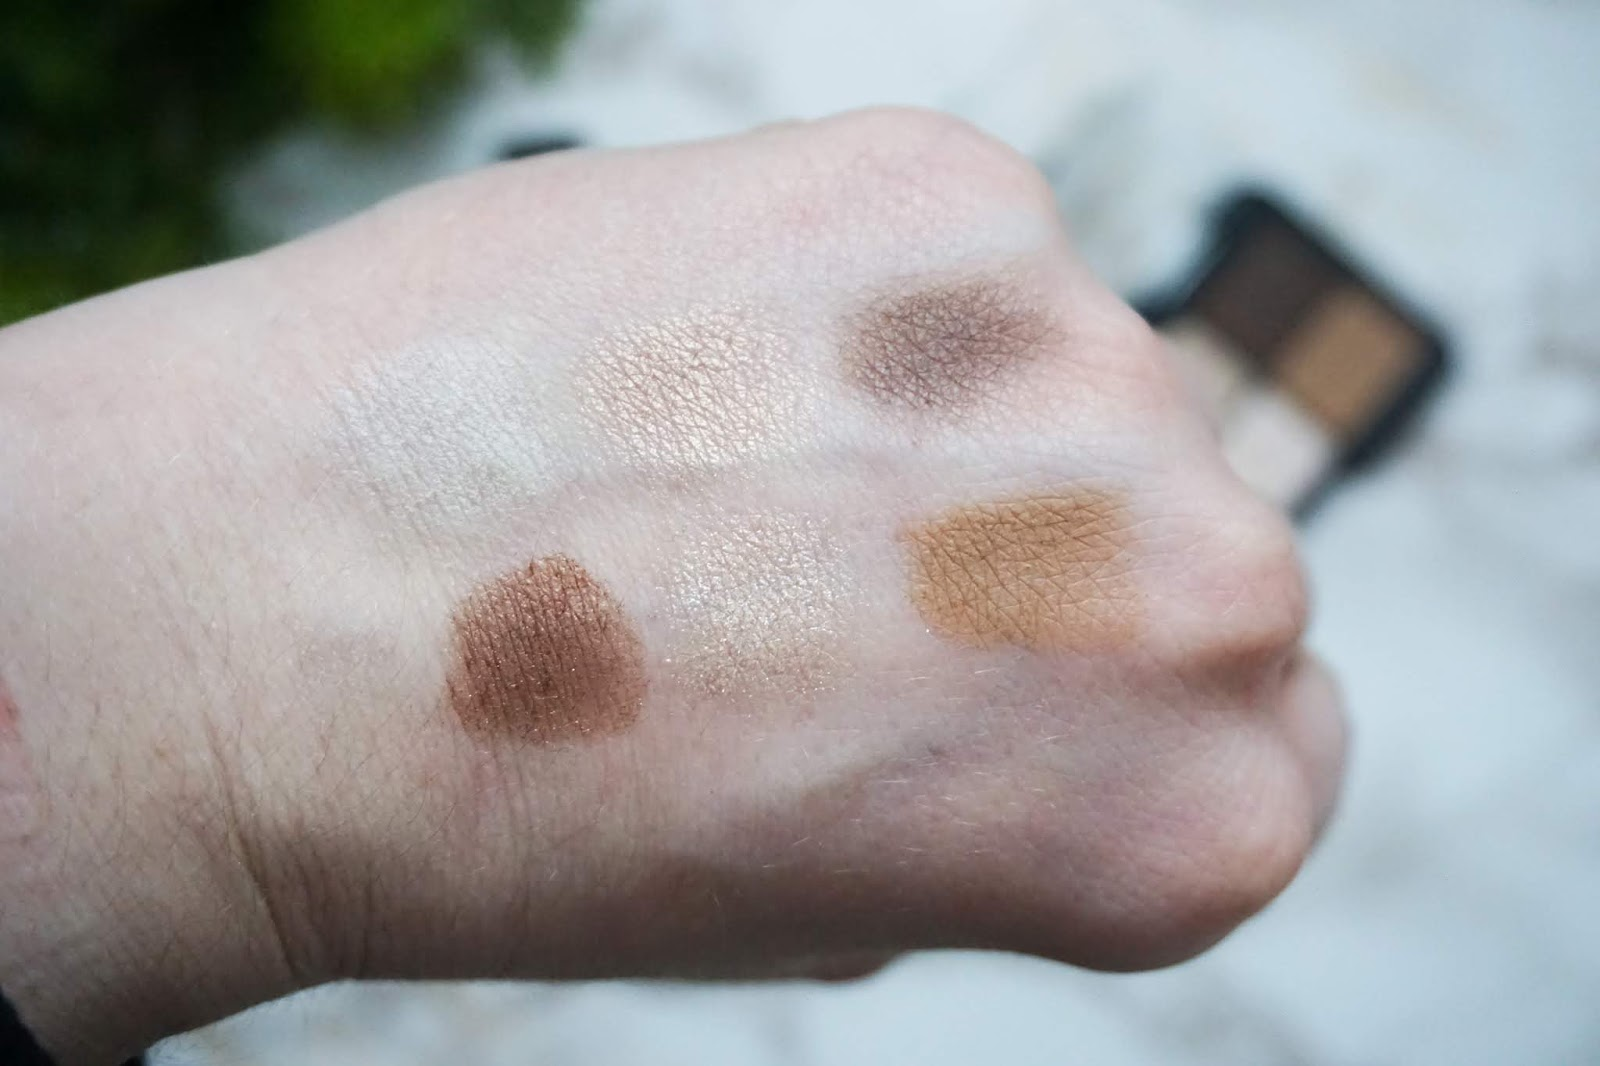 Modern Neutralist Palette à Porter in 050 Less is More Catrice Swatch